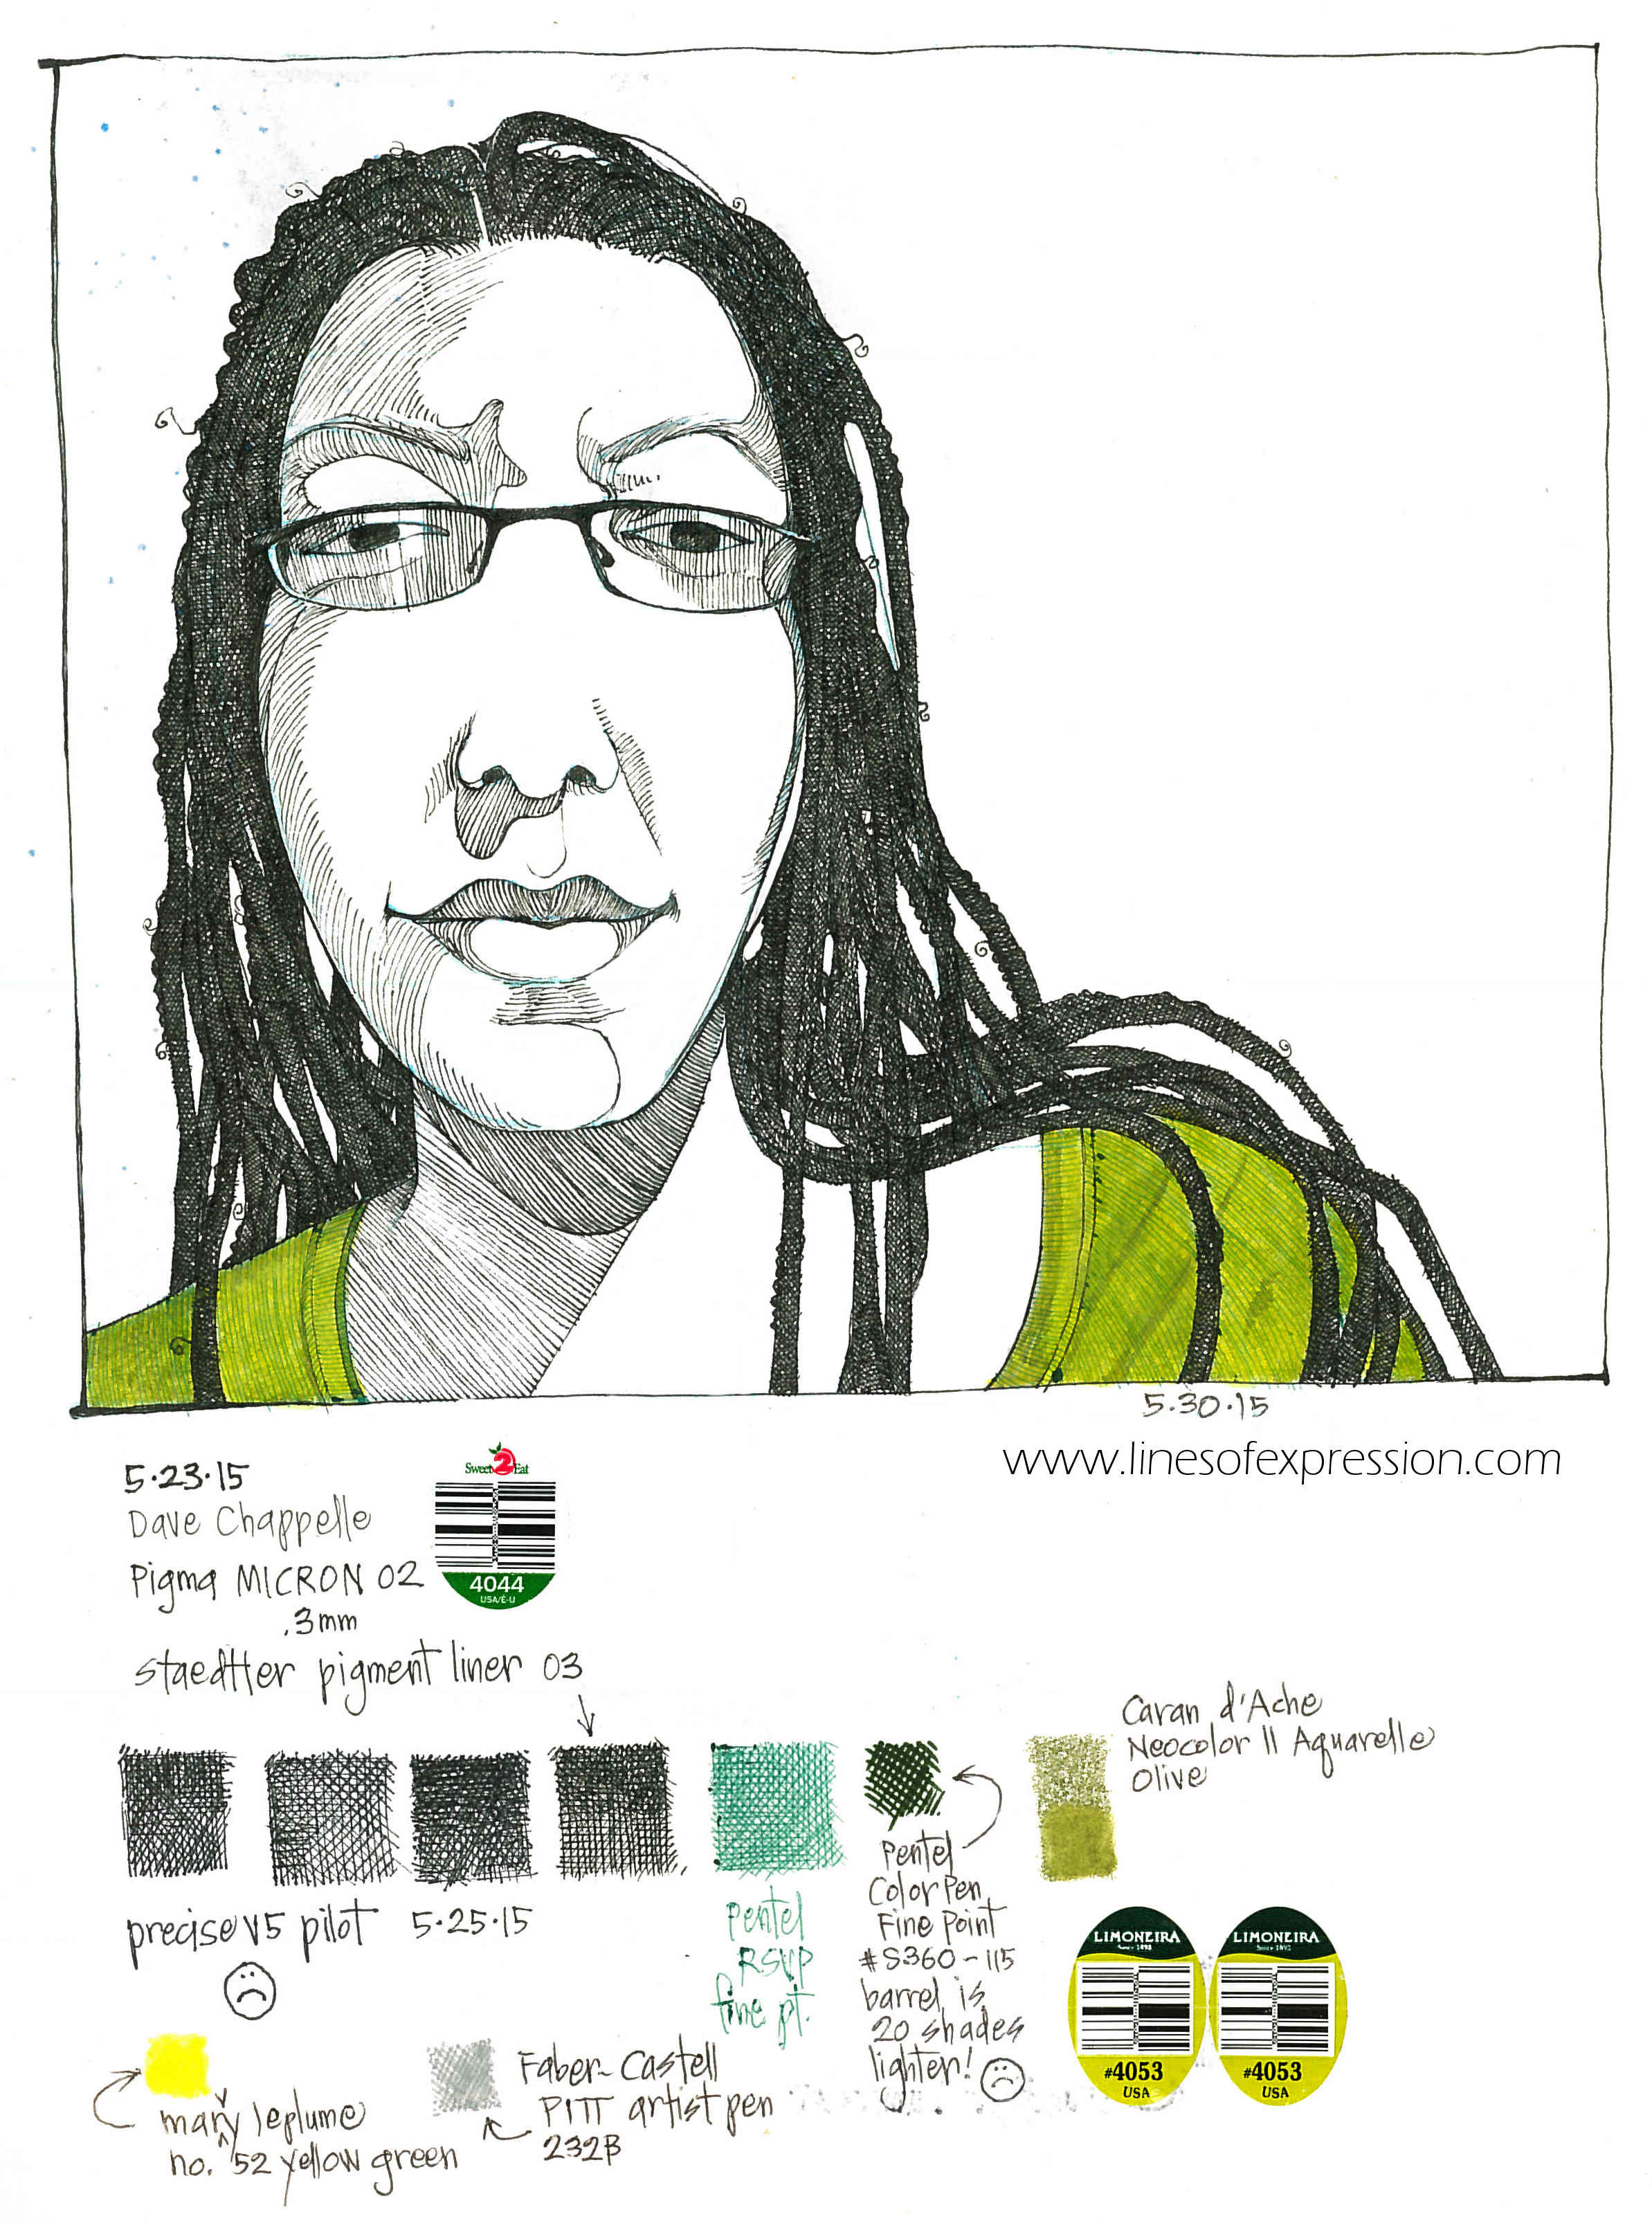 Rebecca Payne. Ink and water soluble crayon self portrait done on 5-30-15.